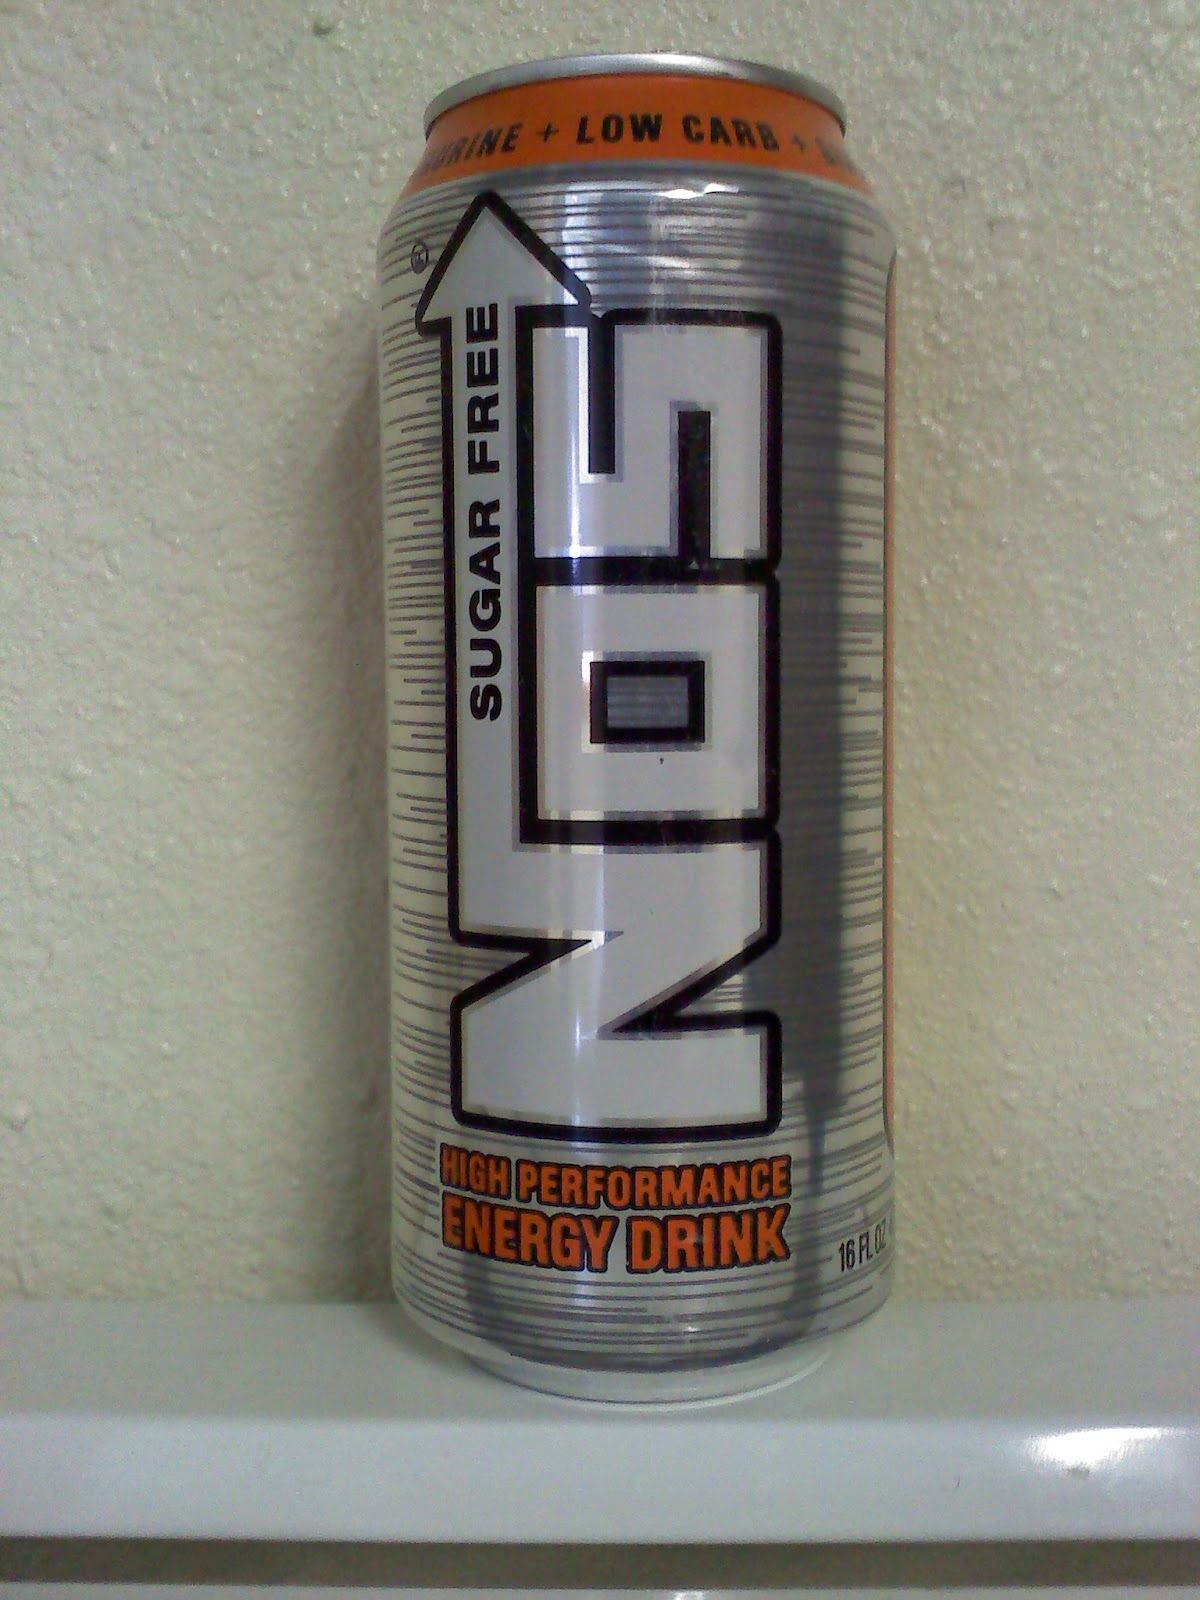 CAFFEINE!: Review for NOS Sugar Free